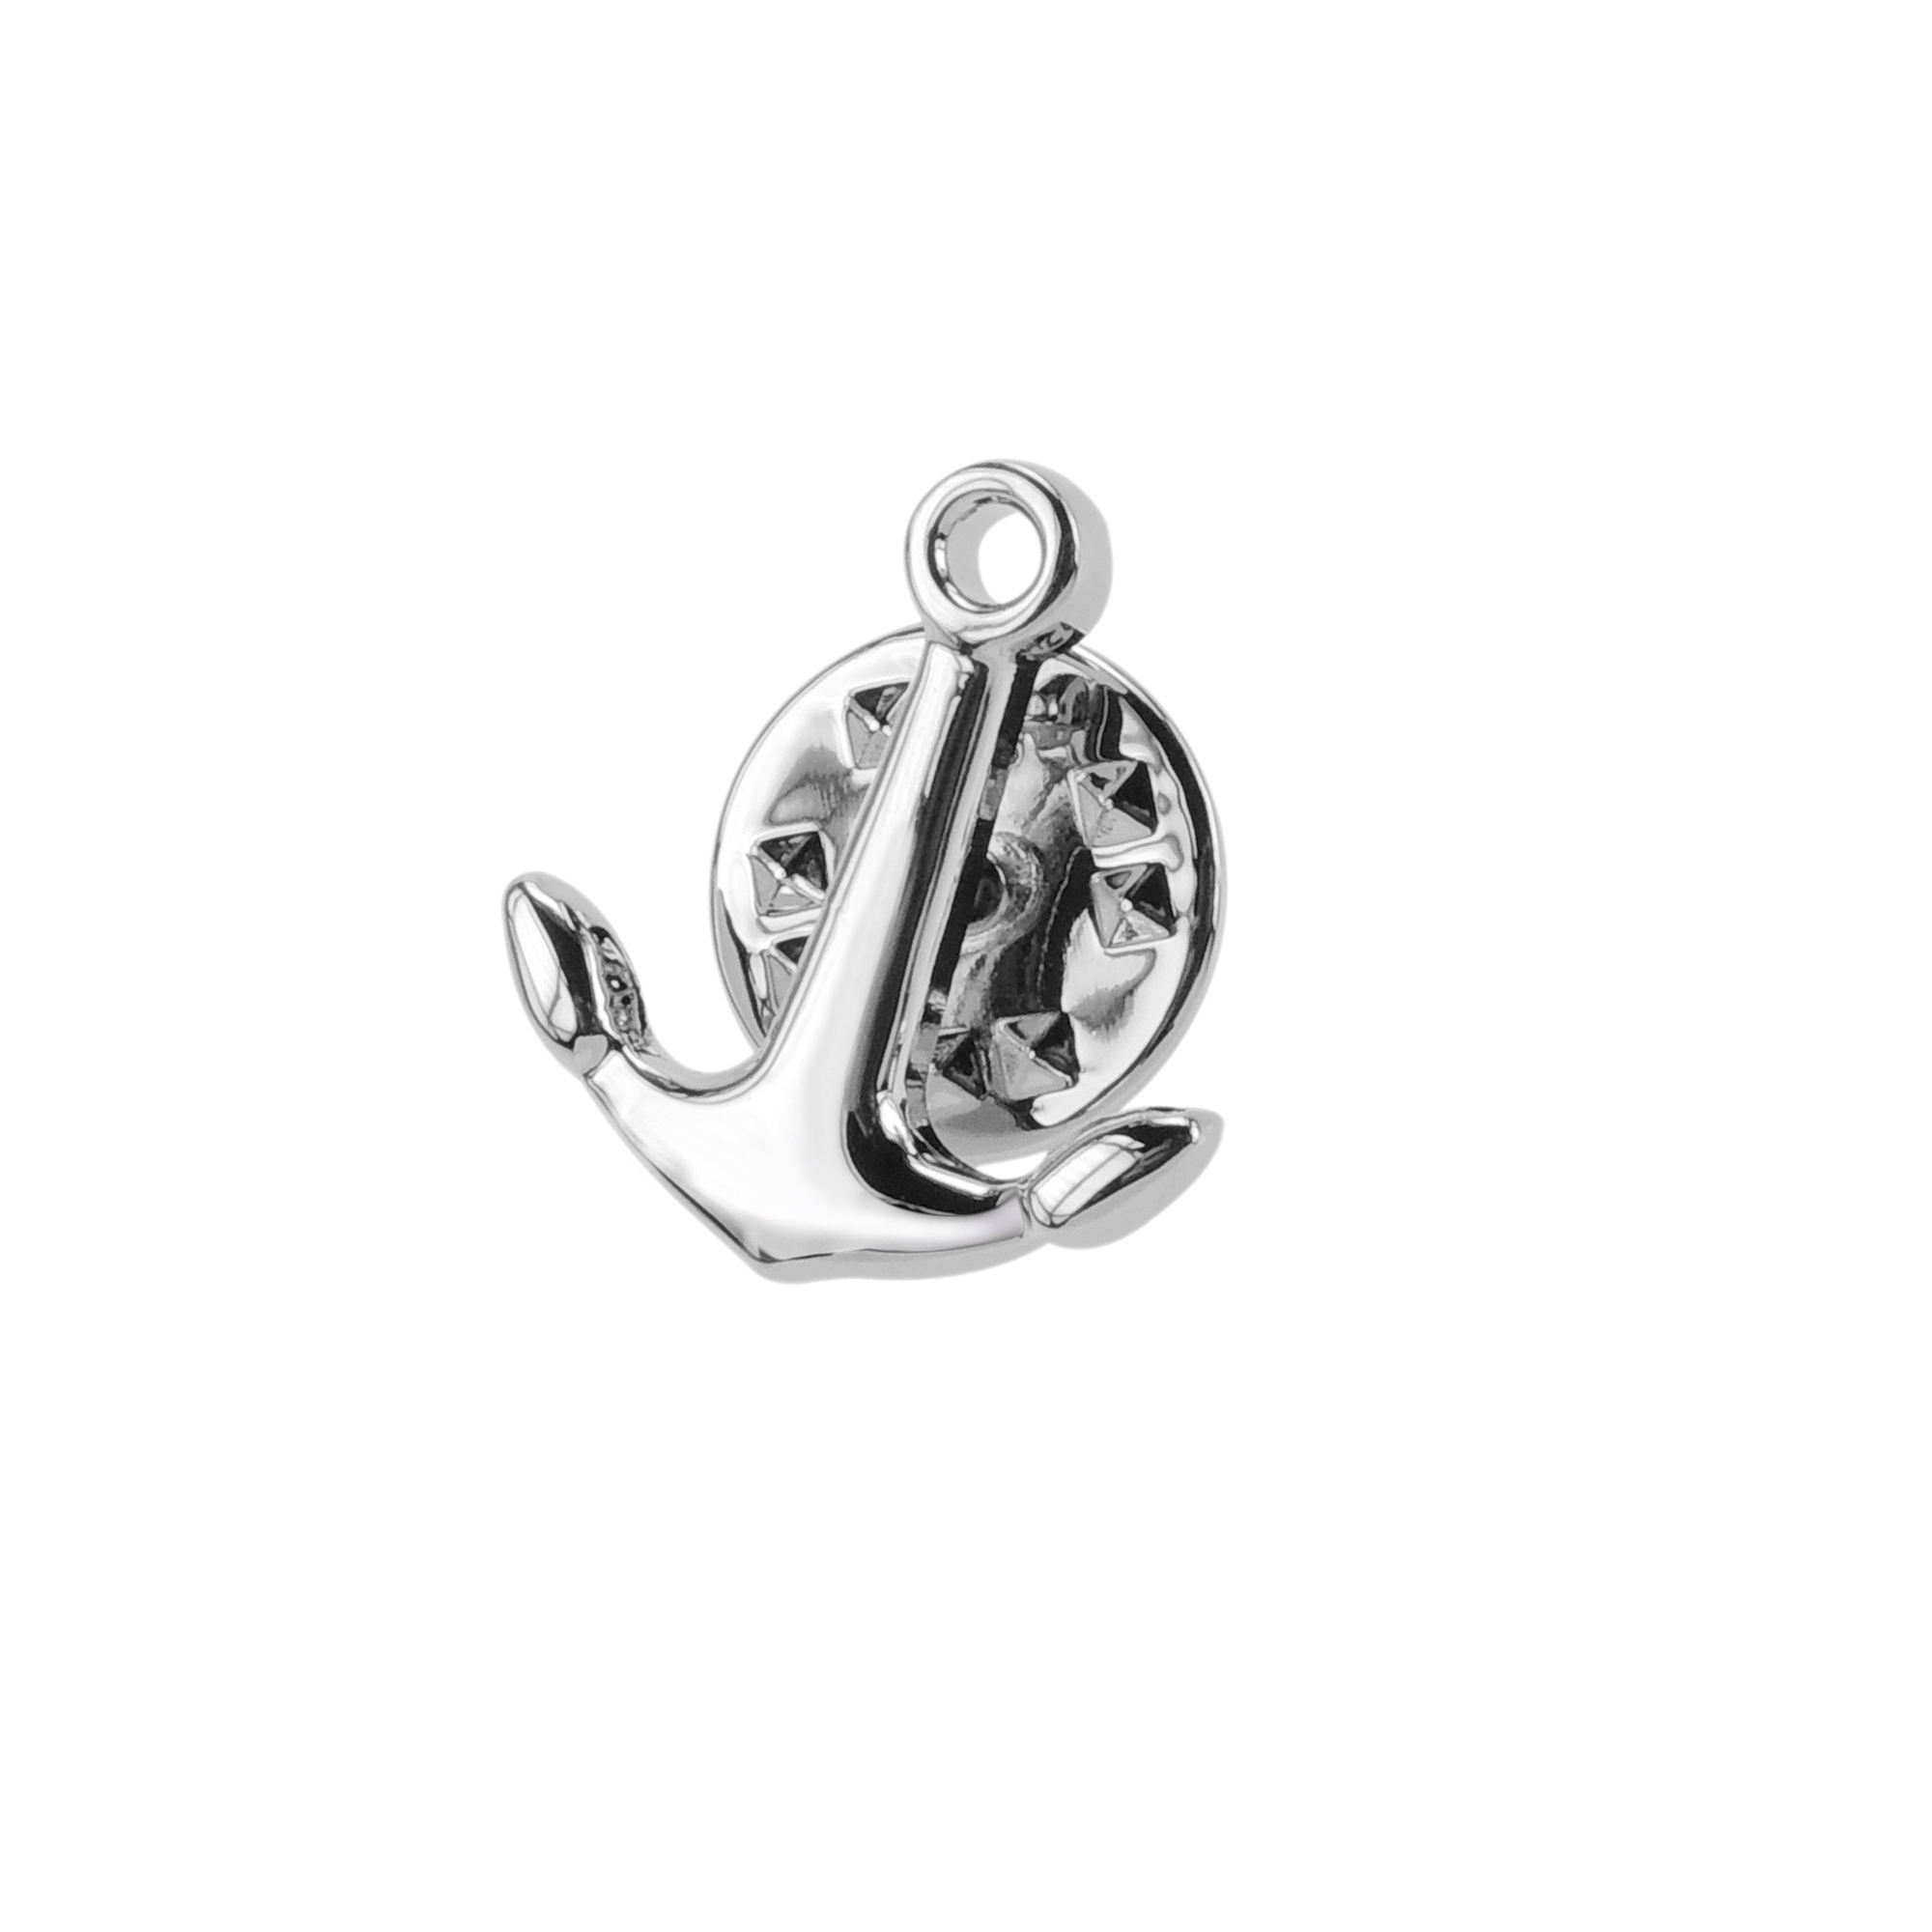 Prata náutico Sailing Anchor Mens Lapela Pin Broche de Metal Pin